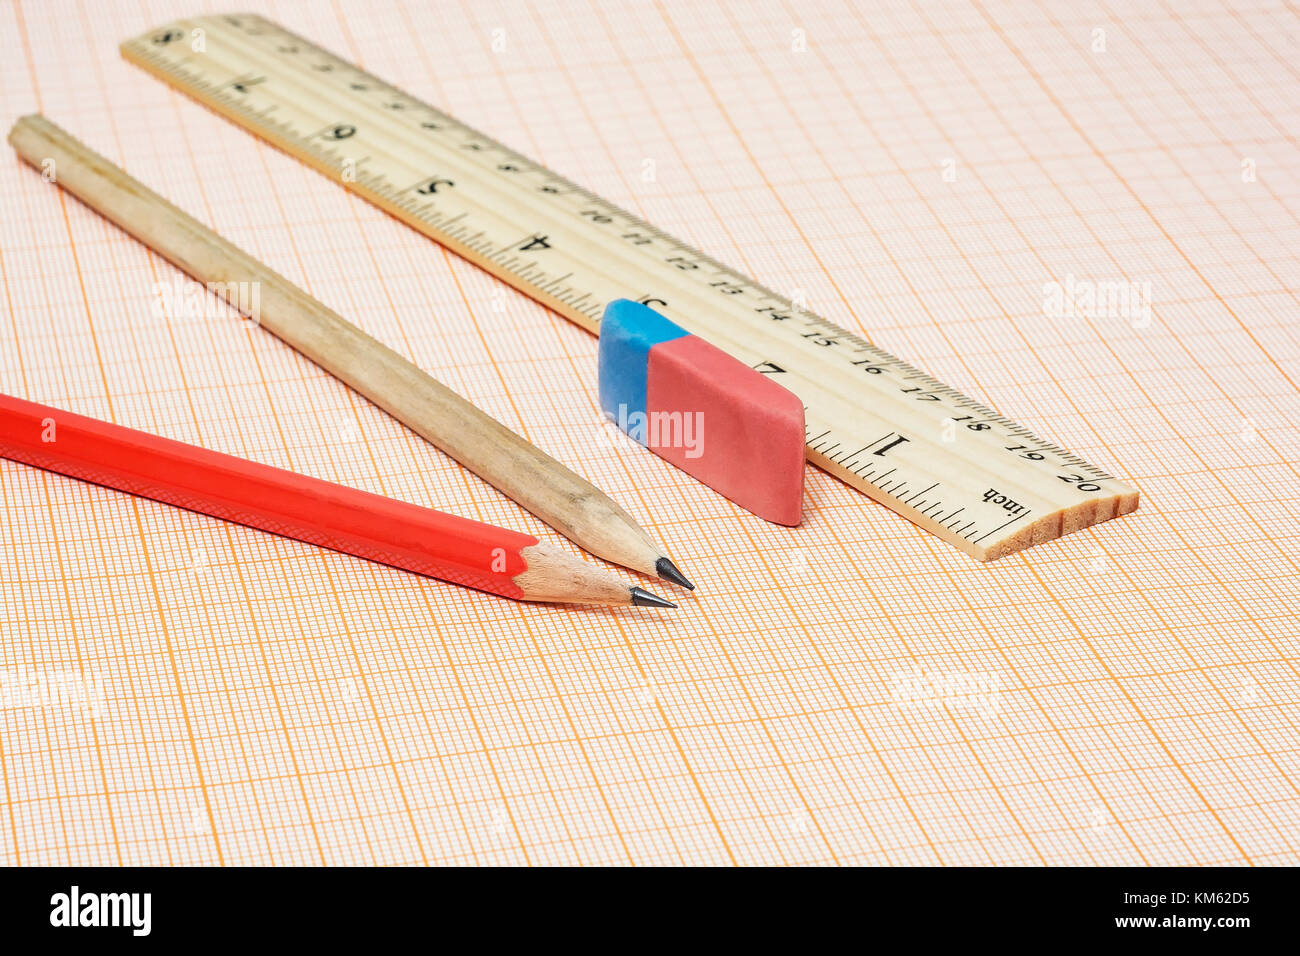 On the millimeter paper there are two simple pencils with an eraser and a ruler - Stock Image